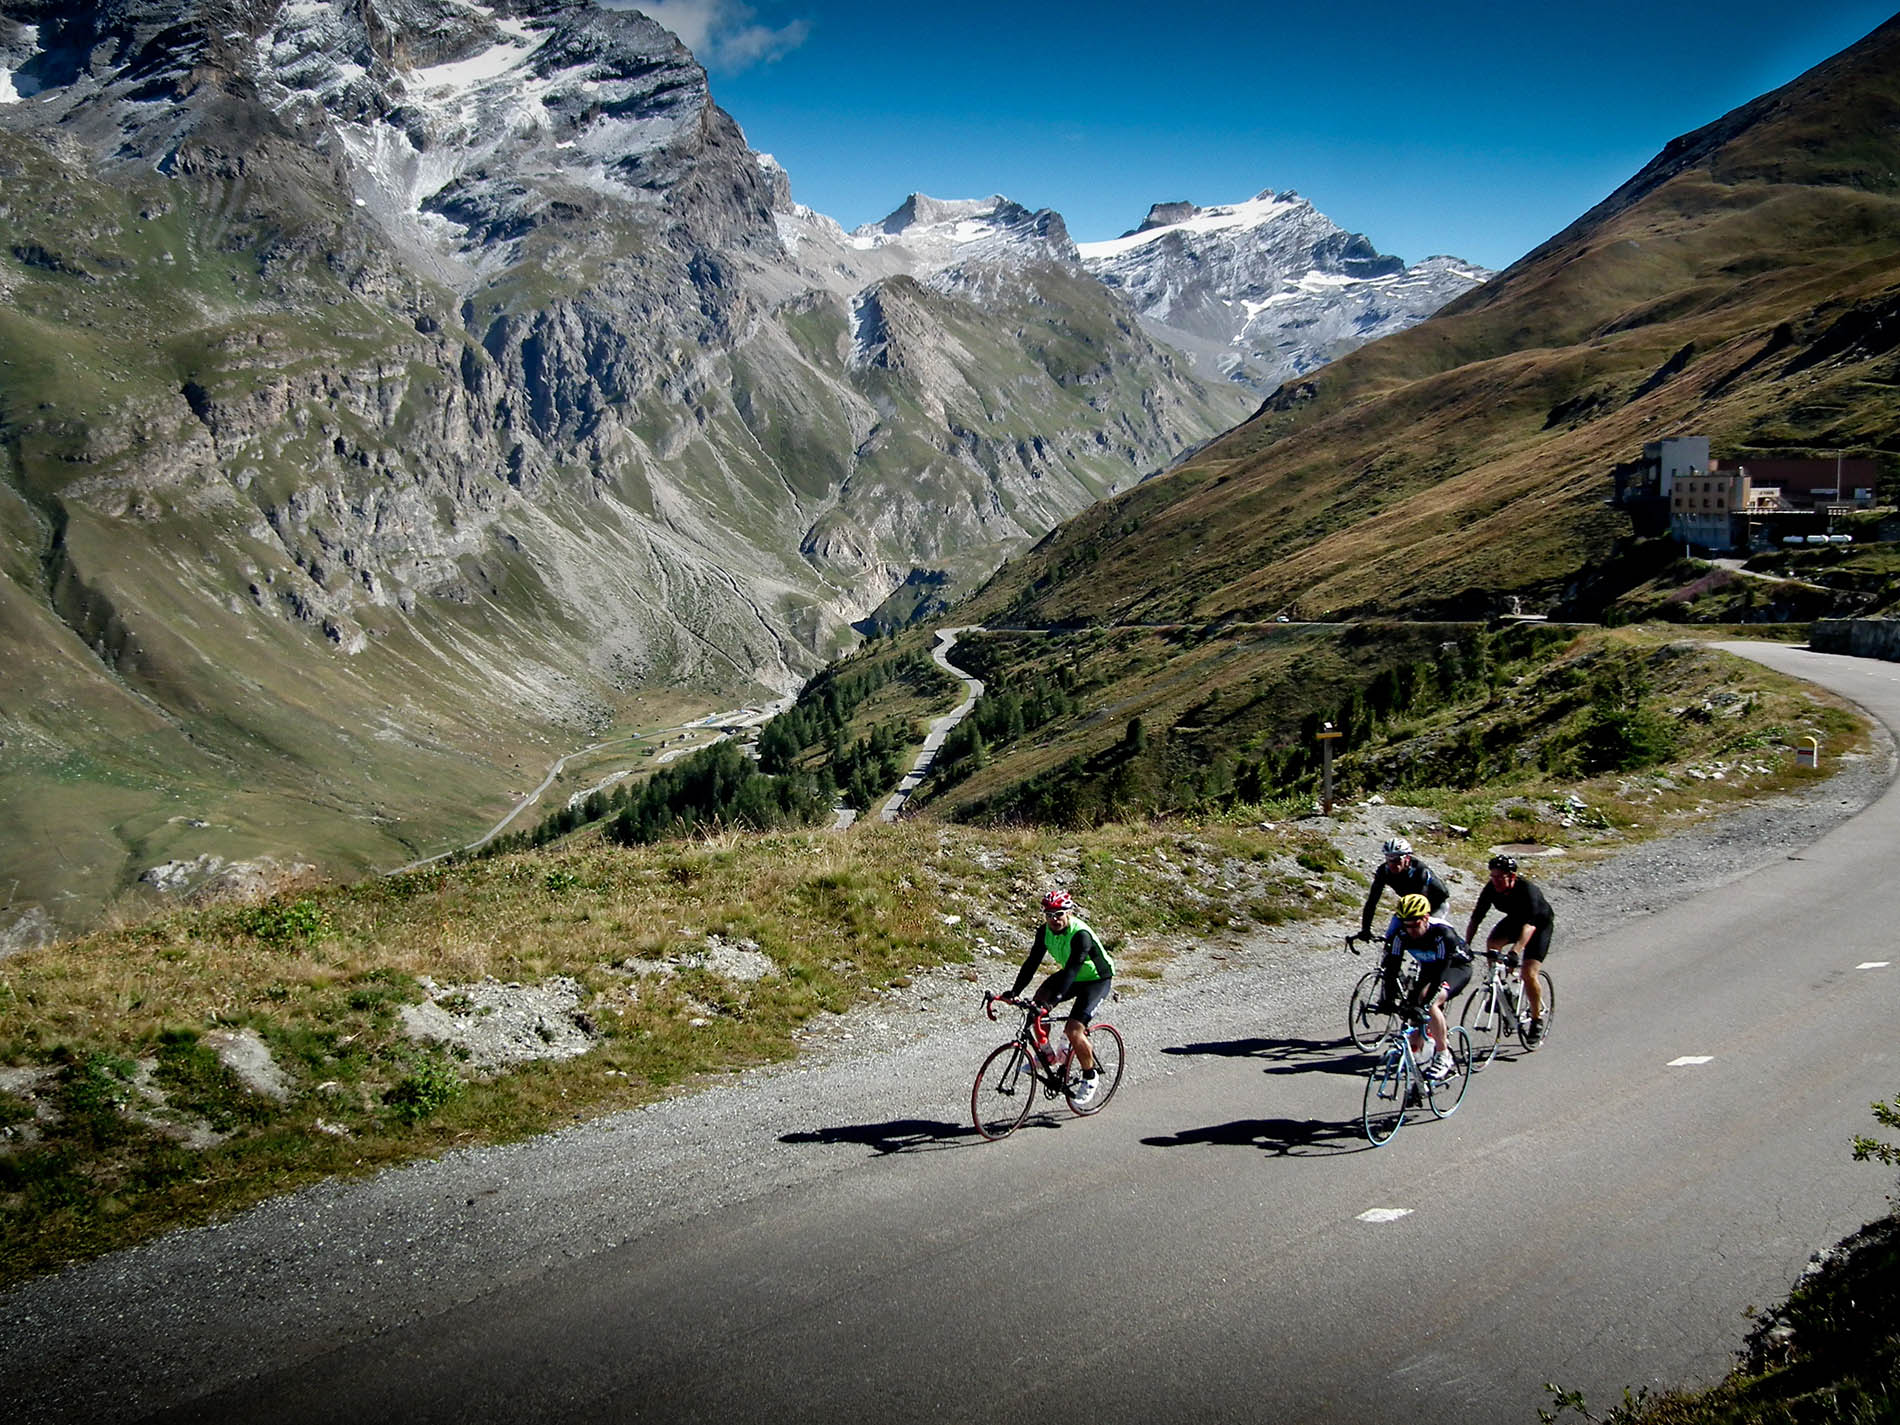 Snow capped mountains and deep valleys on one of Frances classic cols, the Col d'Iseran.